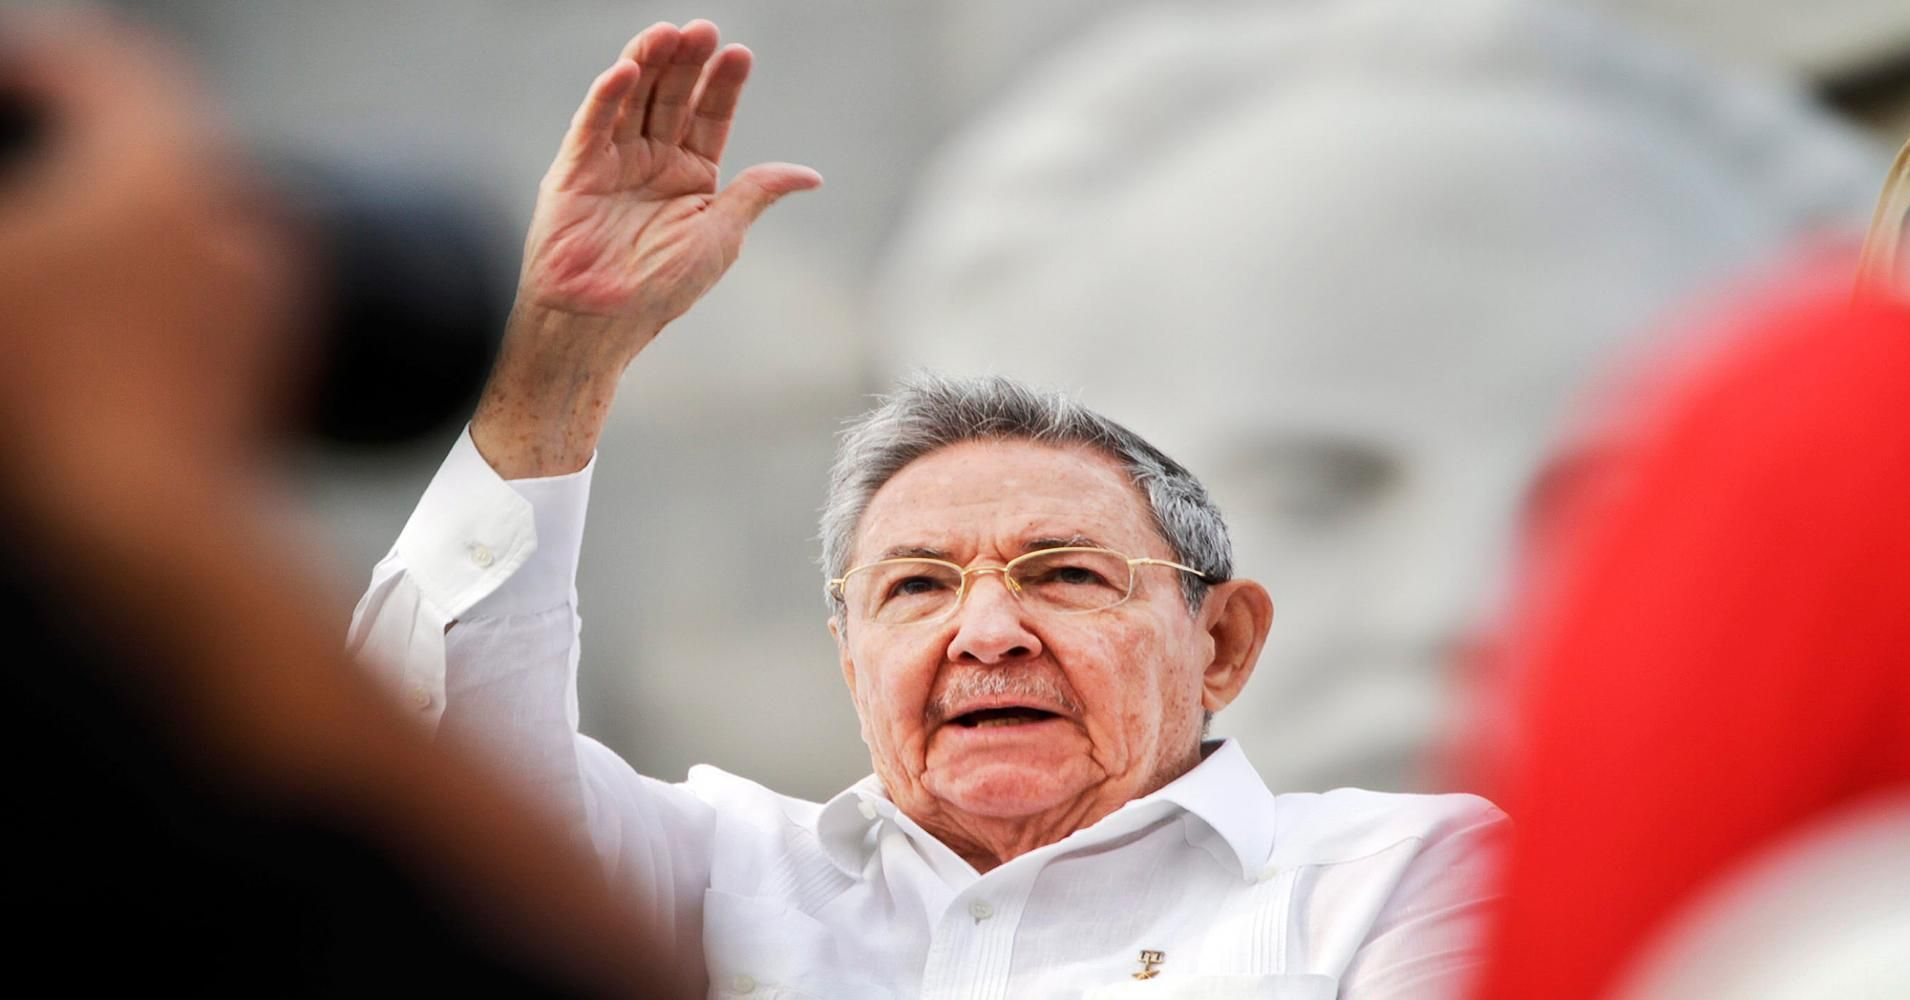 Cuban leader Raul Castro says he will retire in 2018 #cubanleader Cuban leader Raul Castro says he will retire in 2018 #cubanleader Cuban leader Raul Castro says he will retire in 2018 #cubanleader Cuban leader Raul Castro says he will retire in 2018 #cubanleader Cuban leader Raul Castro says he will retire in 2018 #cubanleader Cuban leader Raul Castro says he will retire in 2018 #cubanleader Cuban leader Raul Castro says he will retire in 2018 #cubanleader Cuban leader Raul Castro says he will #cubanleader